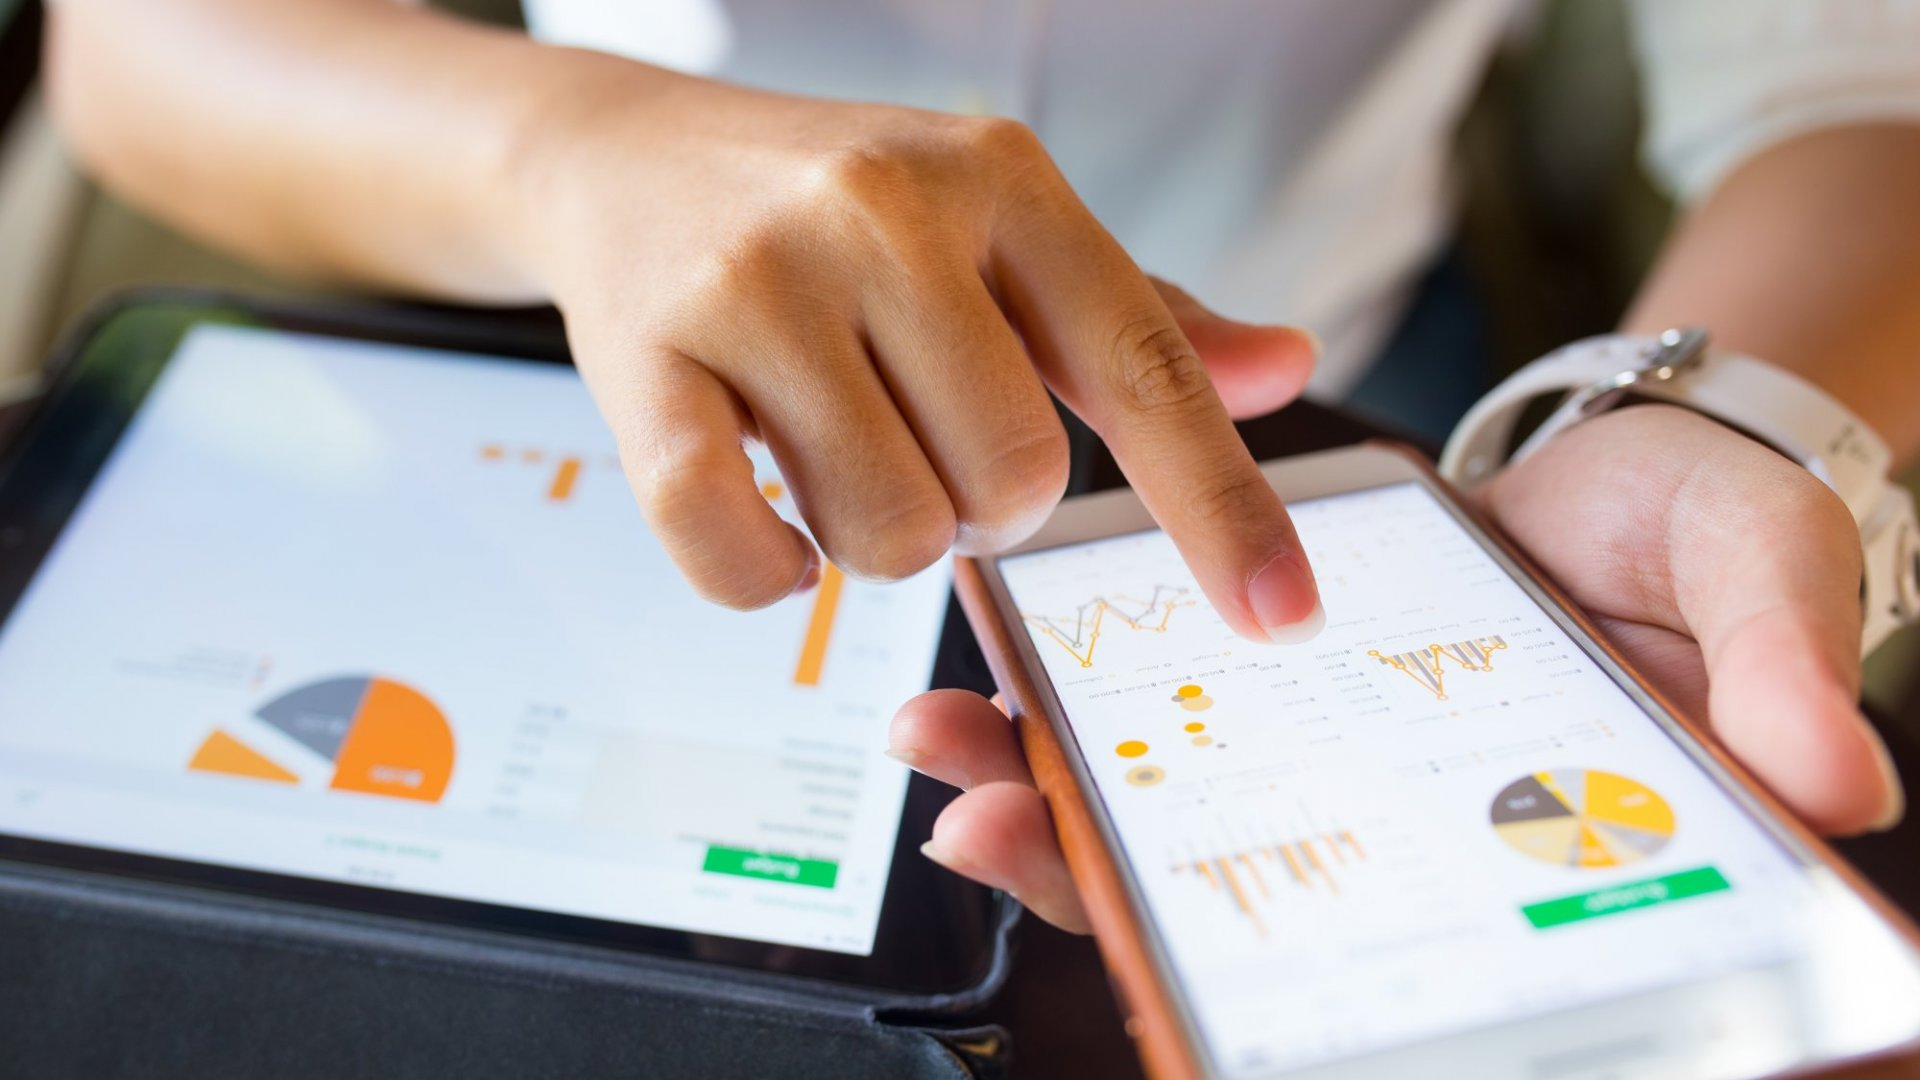 QuickBooks Online Review: A Great Choice for Most Small Businesses